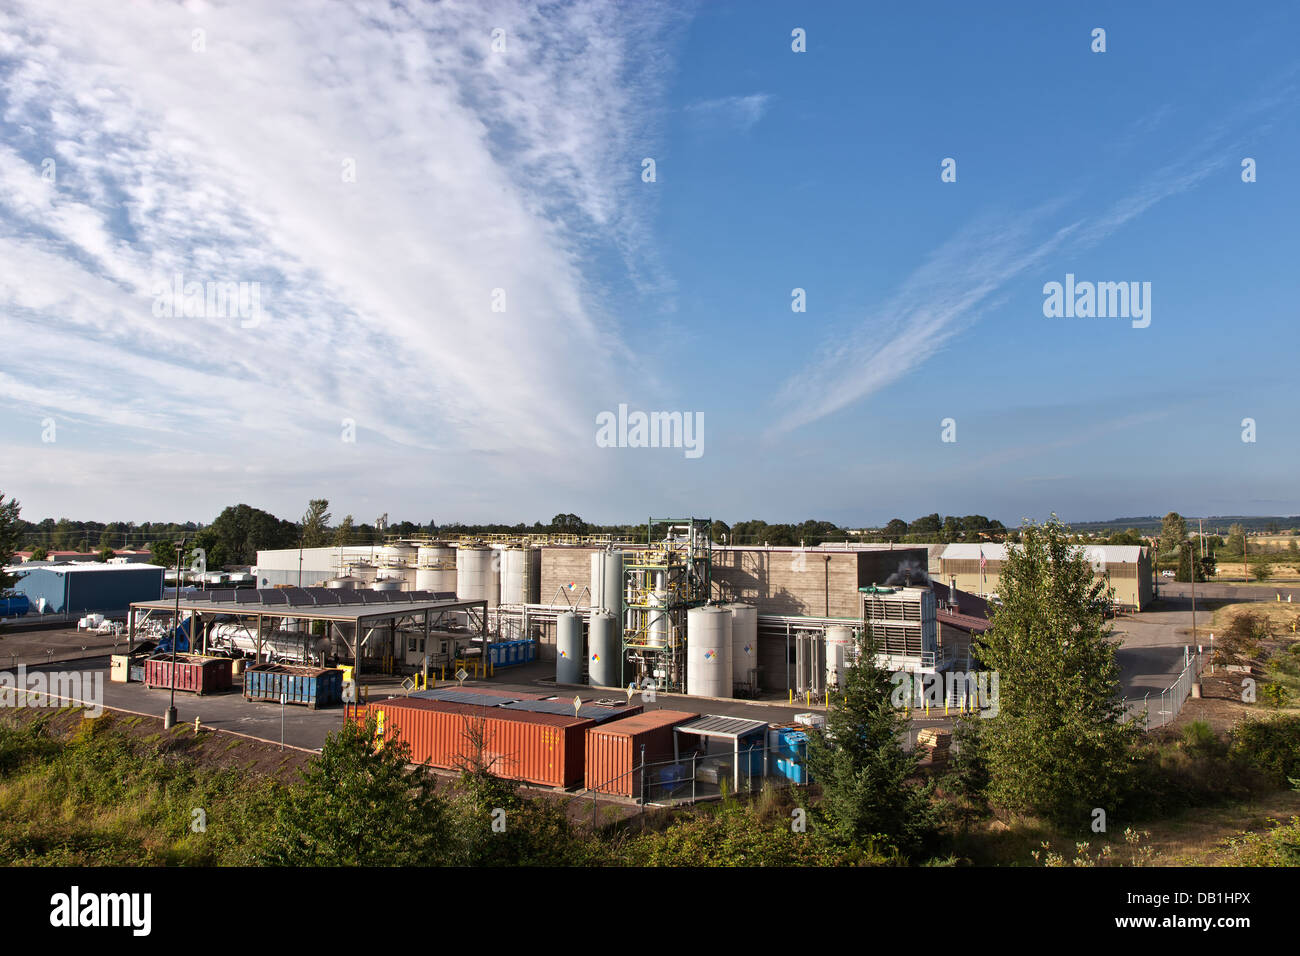 Biofuels production facility. - Stock Image